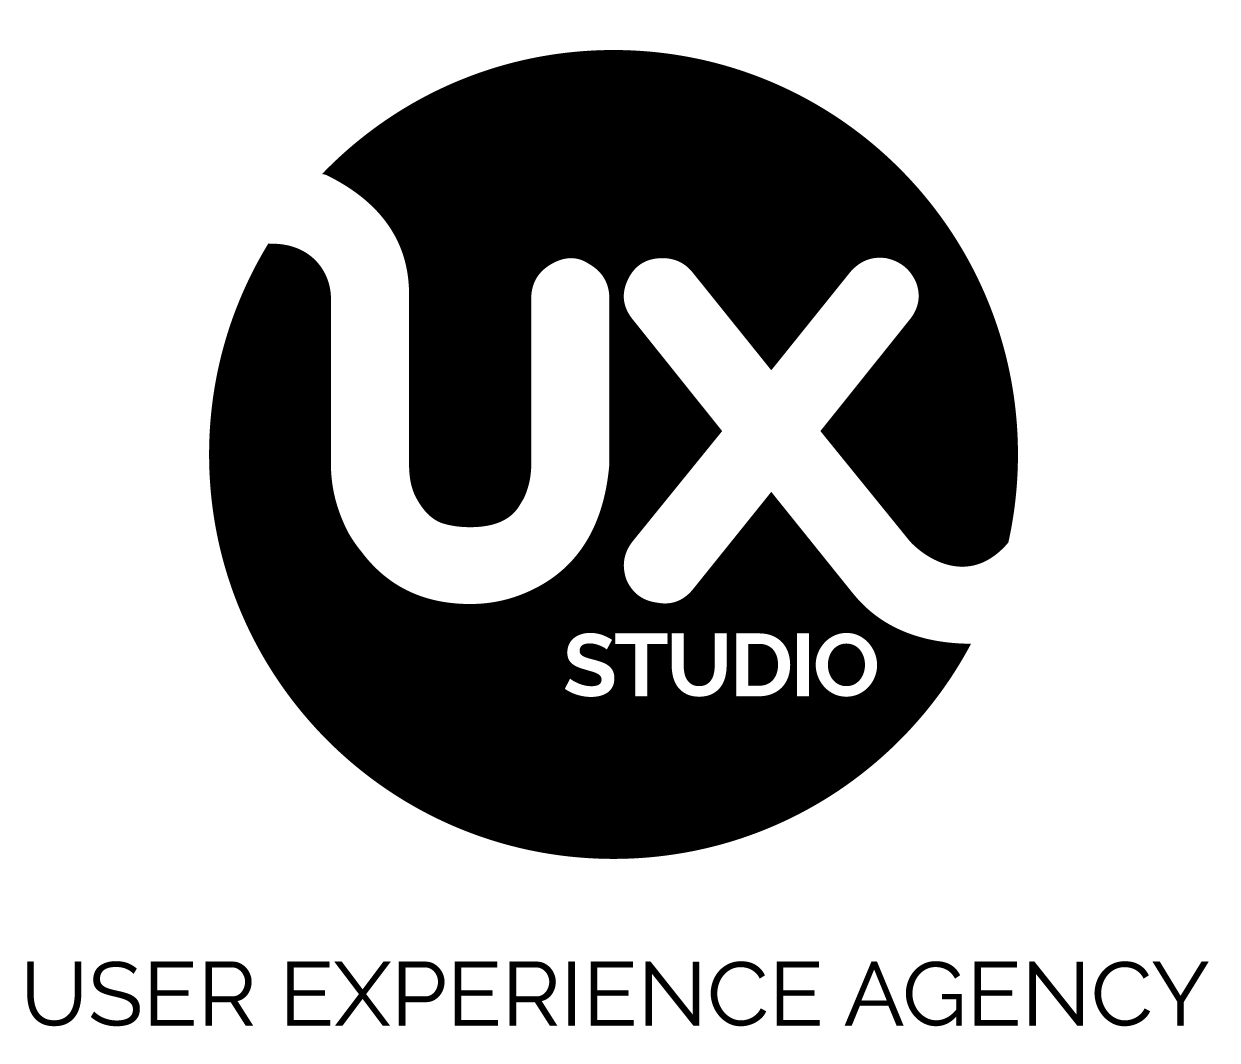 https://3xedigital.com/wp-content/uploads/2019/02/UX-Studio-Logo-Black-2-sig-01.jpg